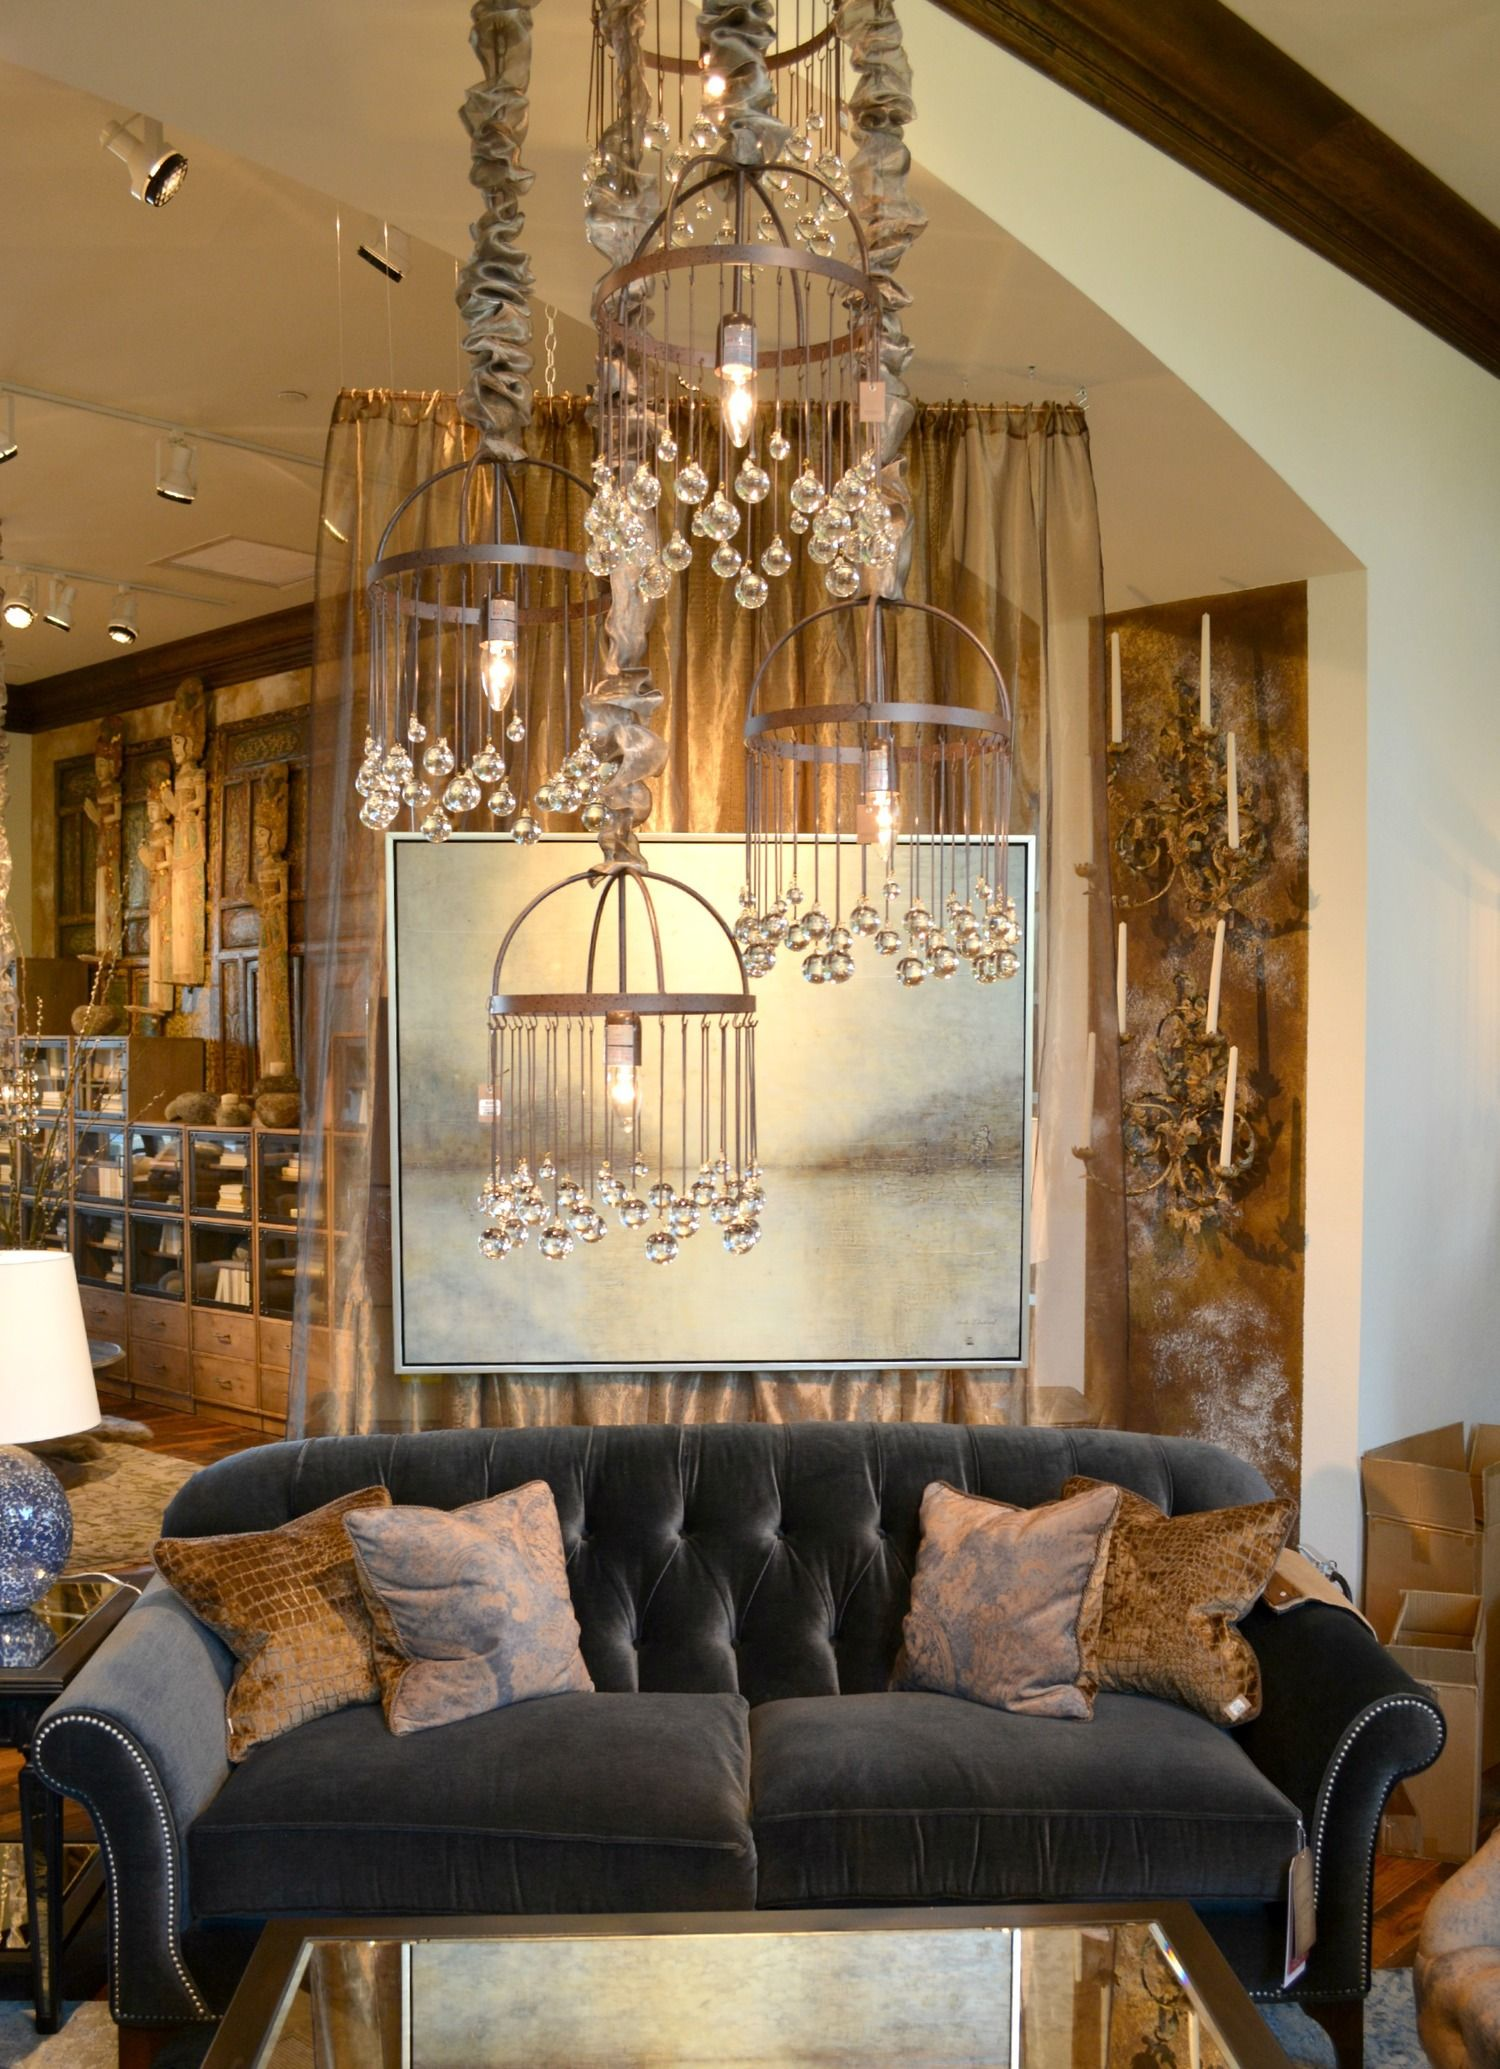 10 things you need to know about ARHAUS